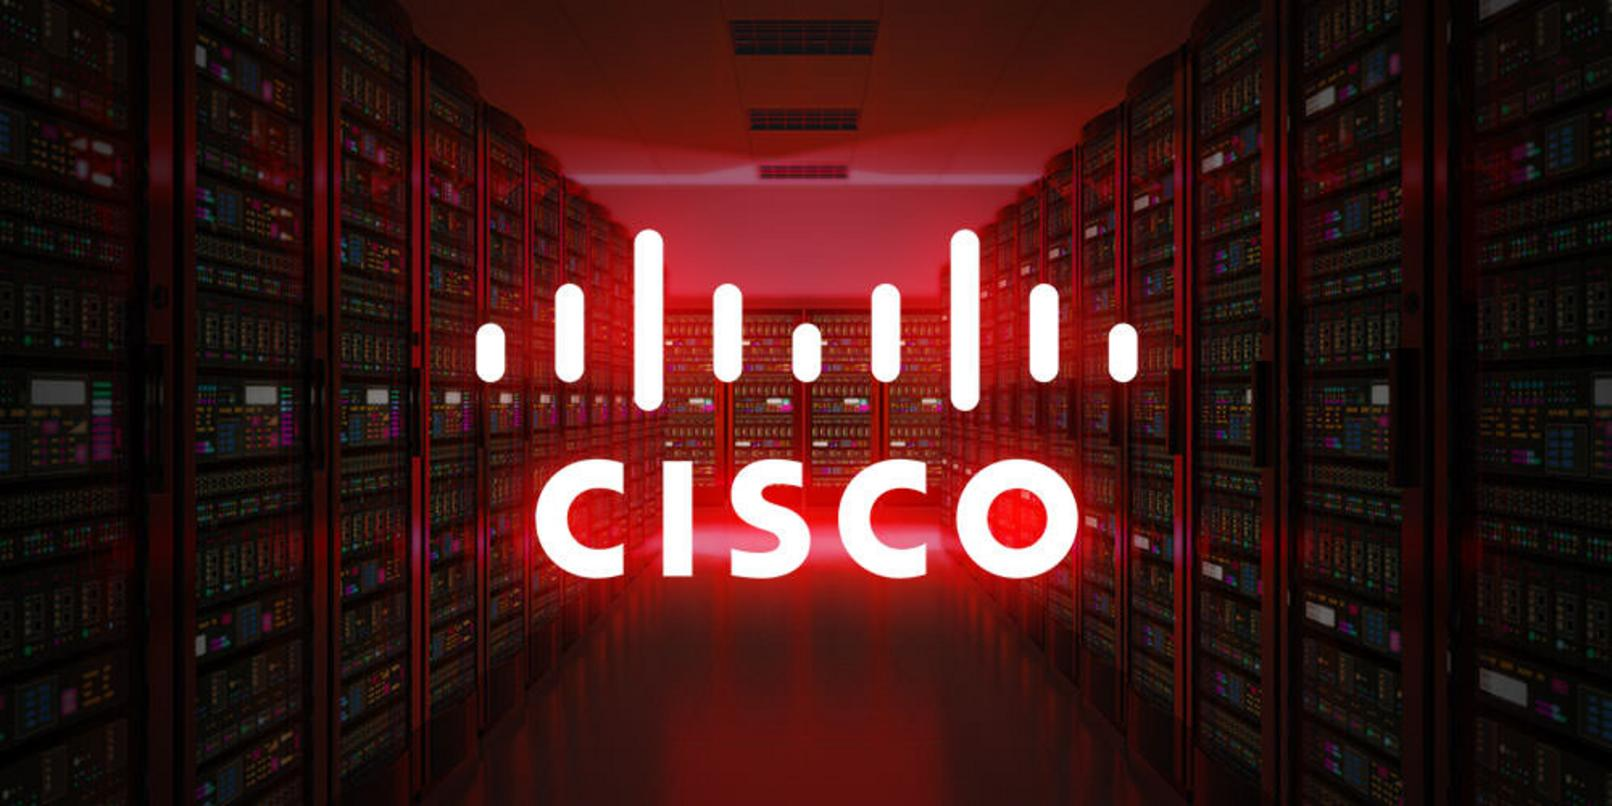 It's certified Cisco-approved networking training for about $5 per course...don't miss out.